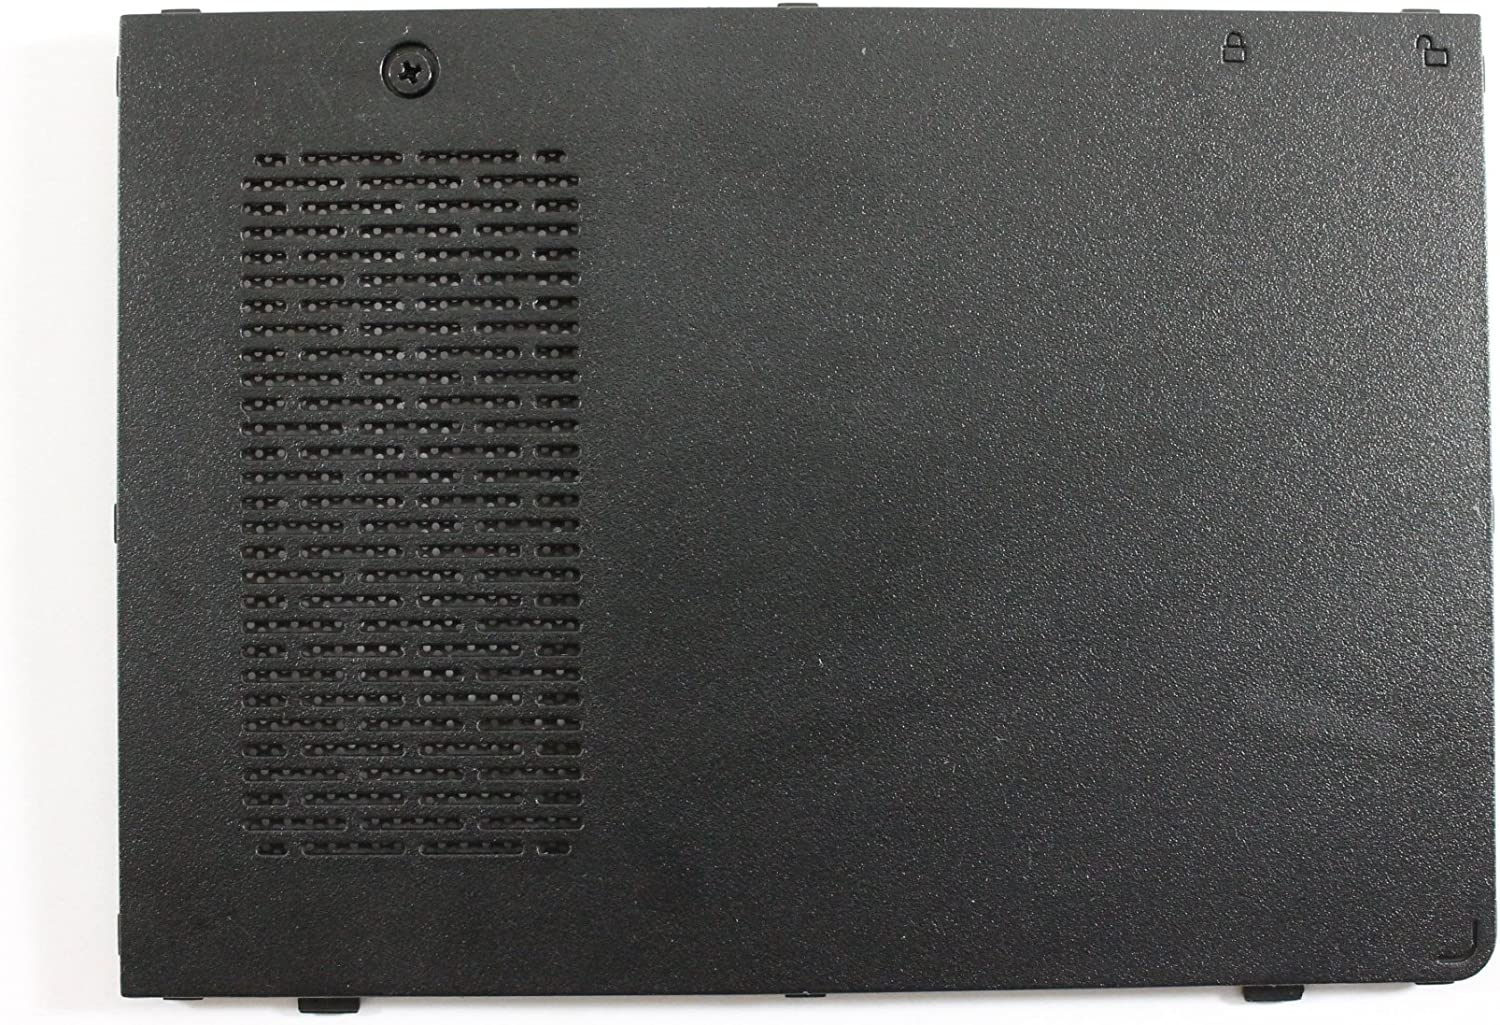 Dell Laptop 29PY4 RAM Cover Inspiron N4010